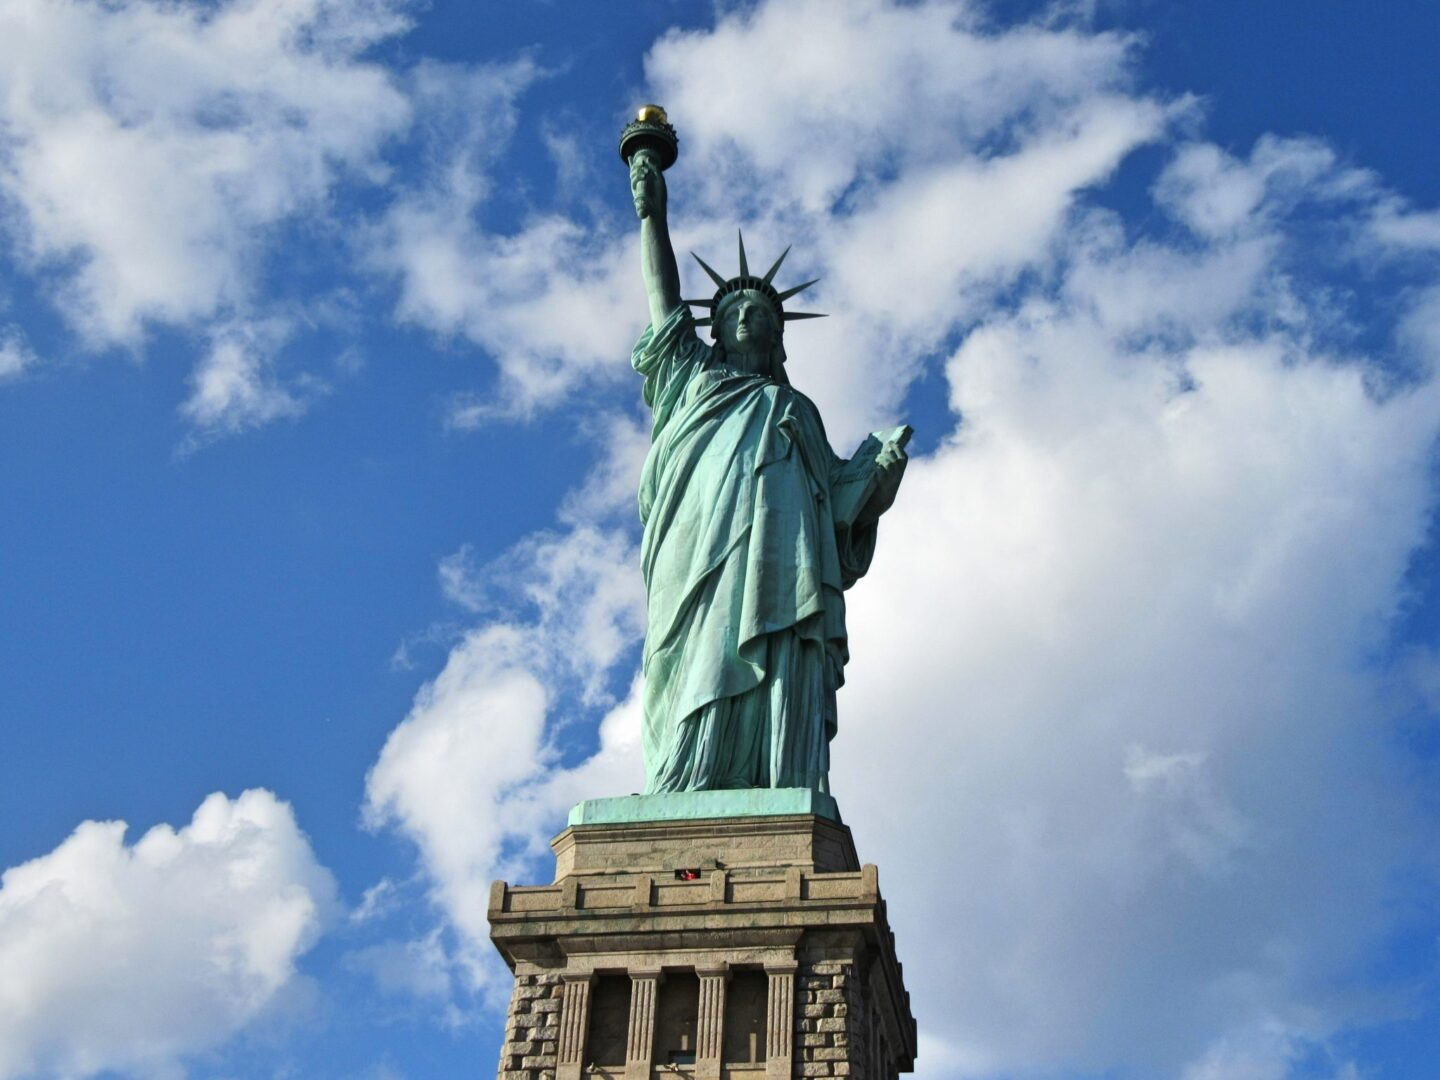 USA: Visit New York In January If You're Looking For A Post Christmas Pick Me Up!